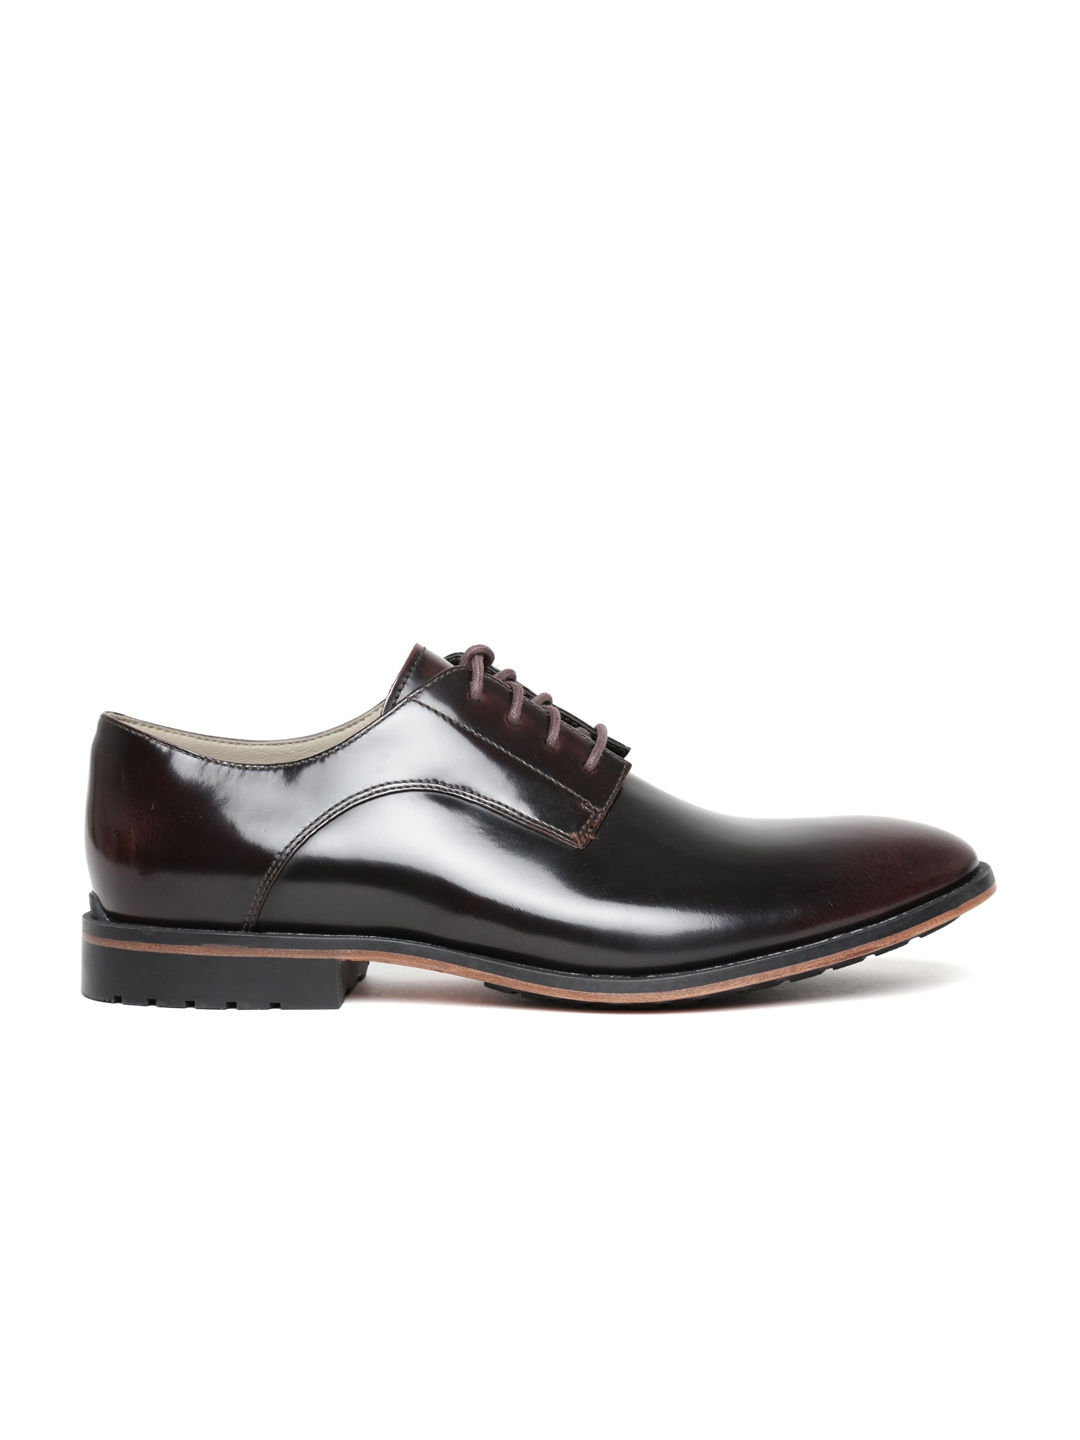 formal shoes price list in india 30 05 2017 buy formal